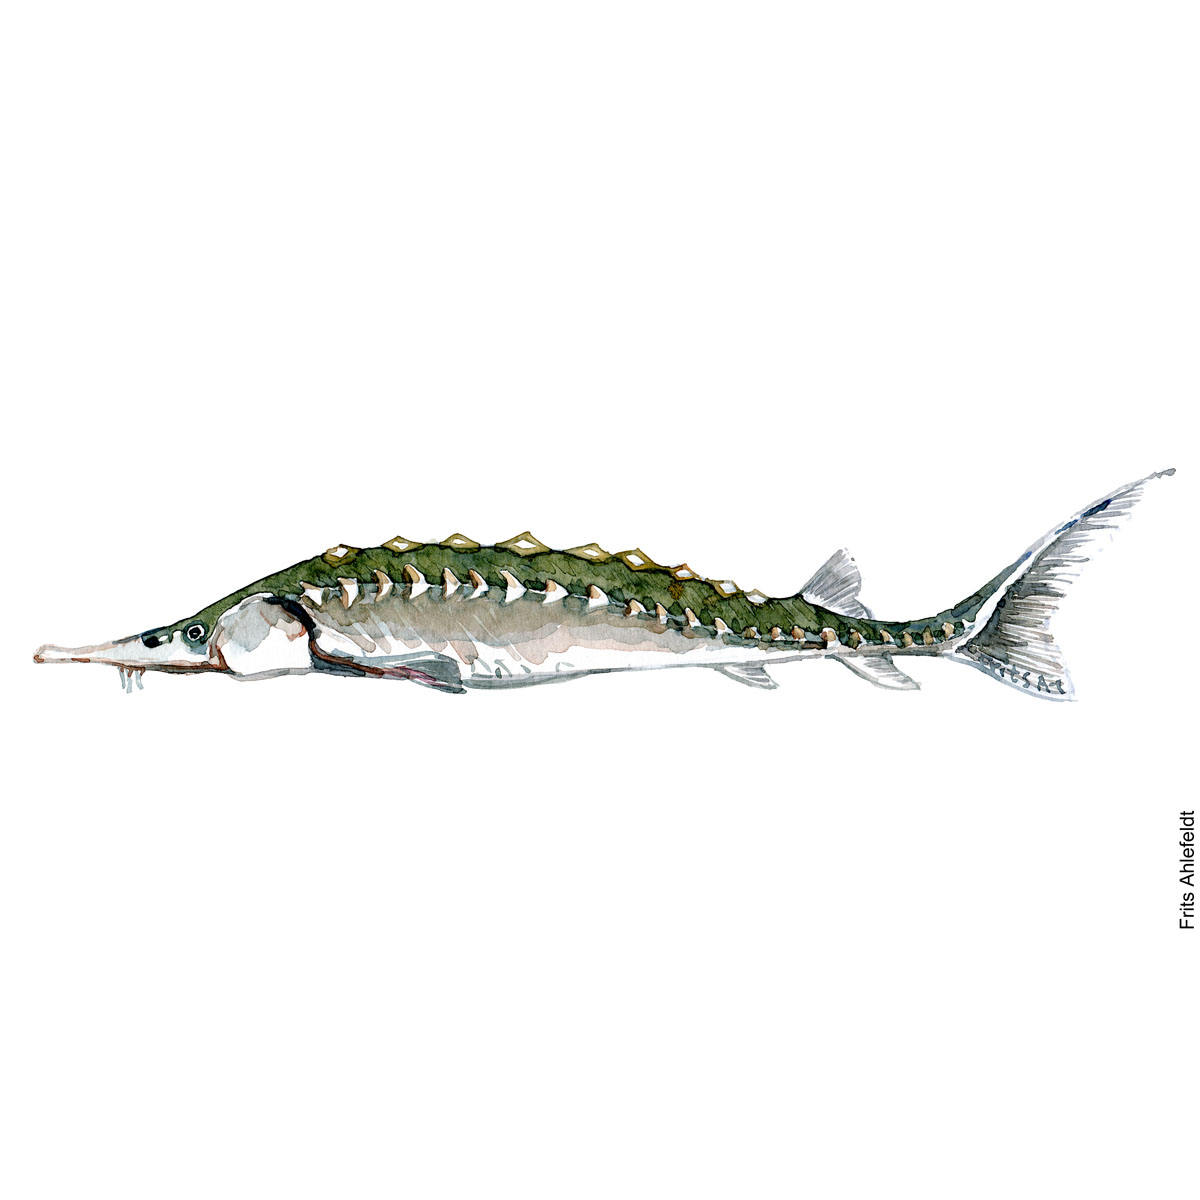 Sturgeon. Stør. Watercolour, Freshwater fish illustration by Frits Ahlefeldt